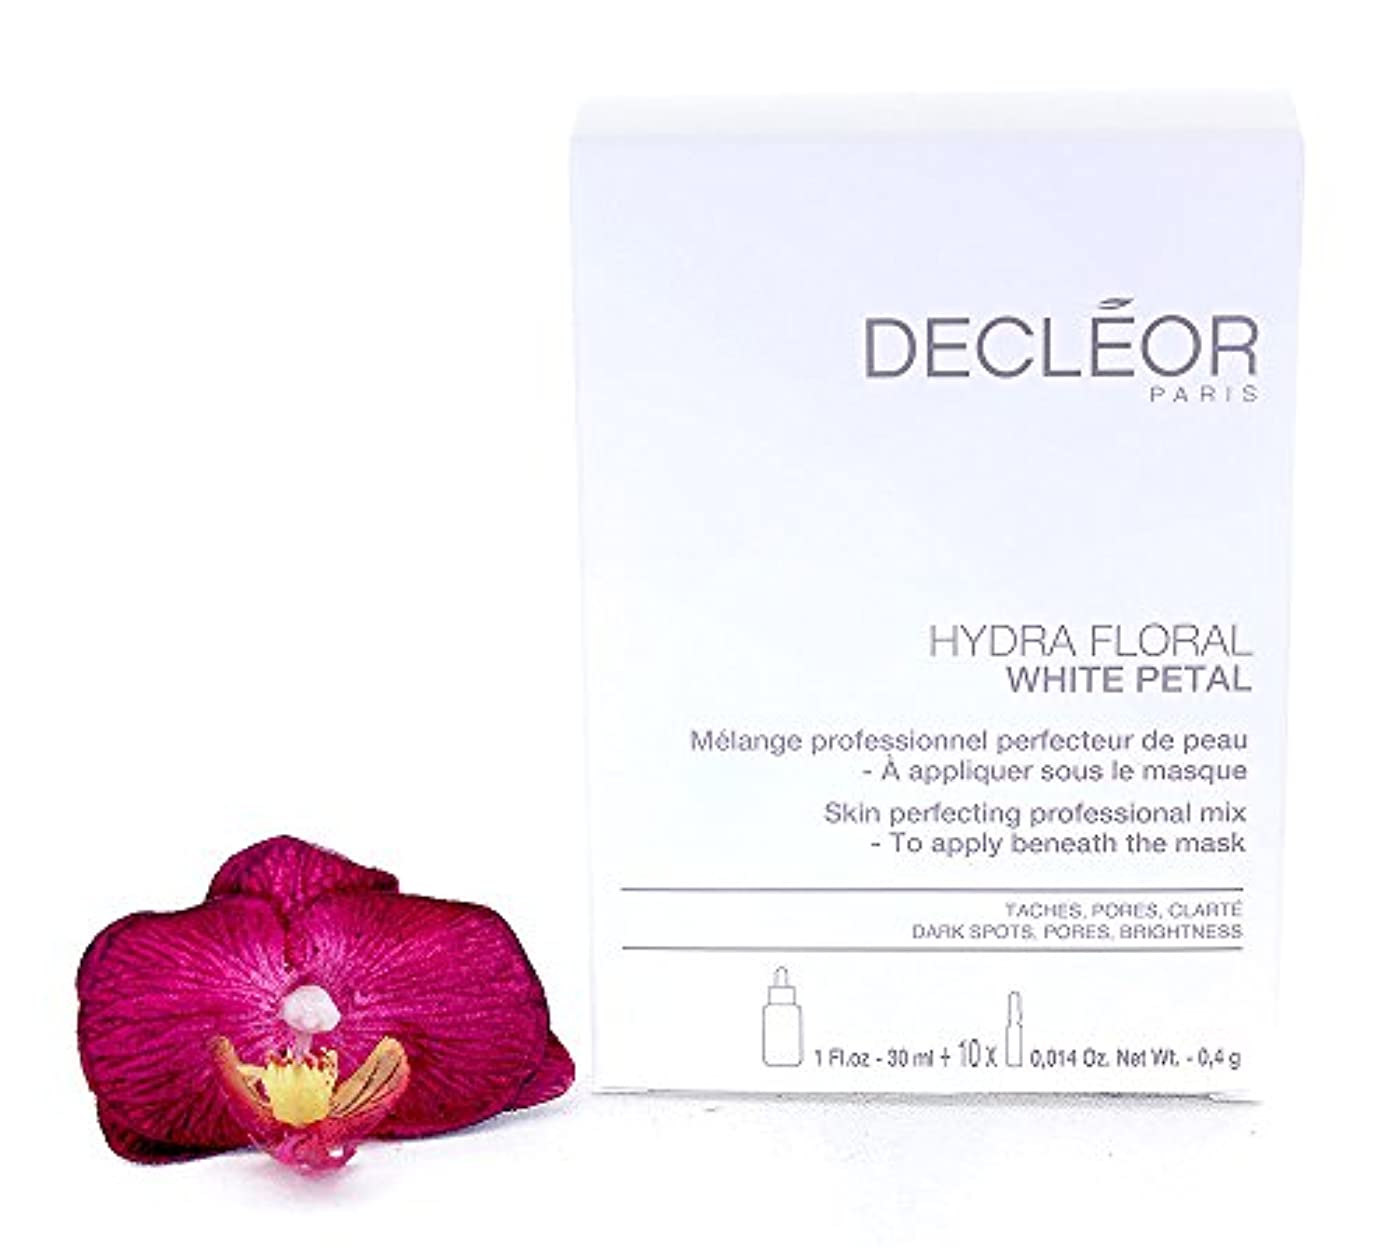 ファックス鳴らすアウターデクレオール Hydra Floral White Petal Skin Perfecting Professional Mix (1x Concentrate 30ml, 10x Powder 4g) - Salon...